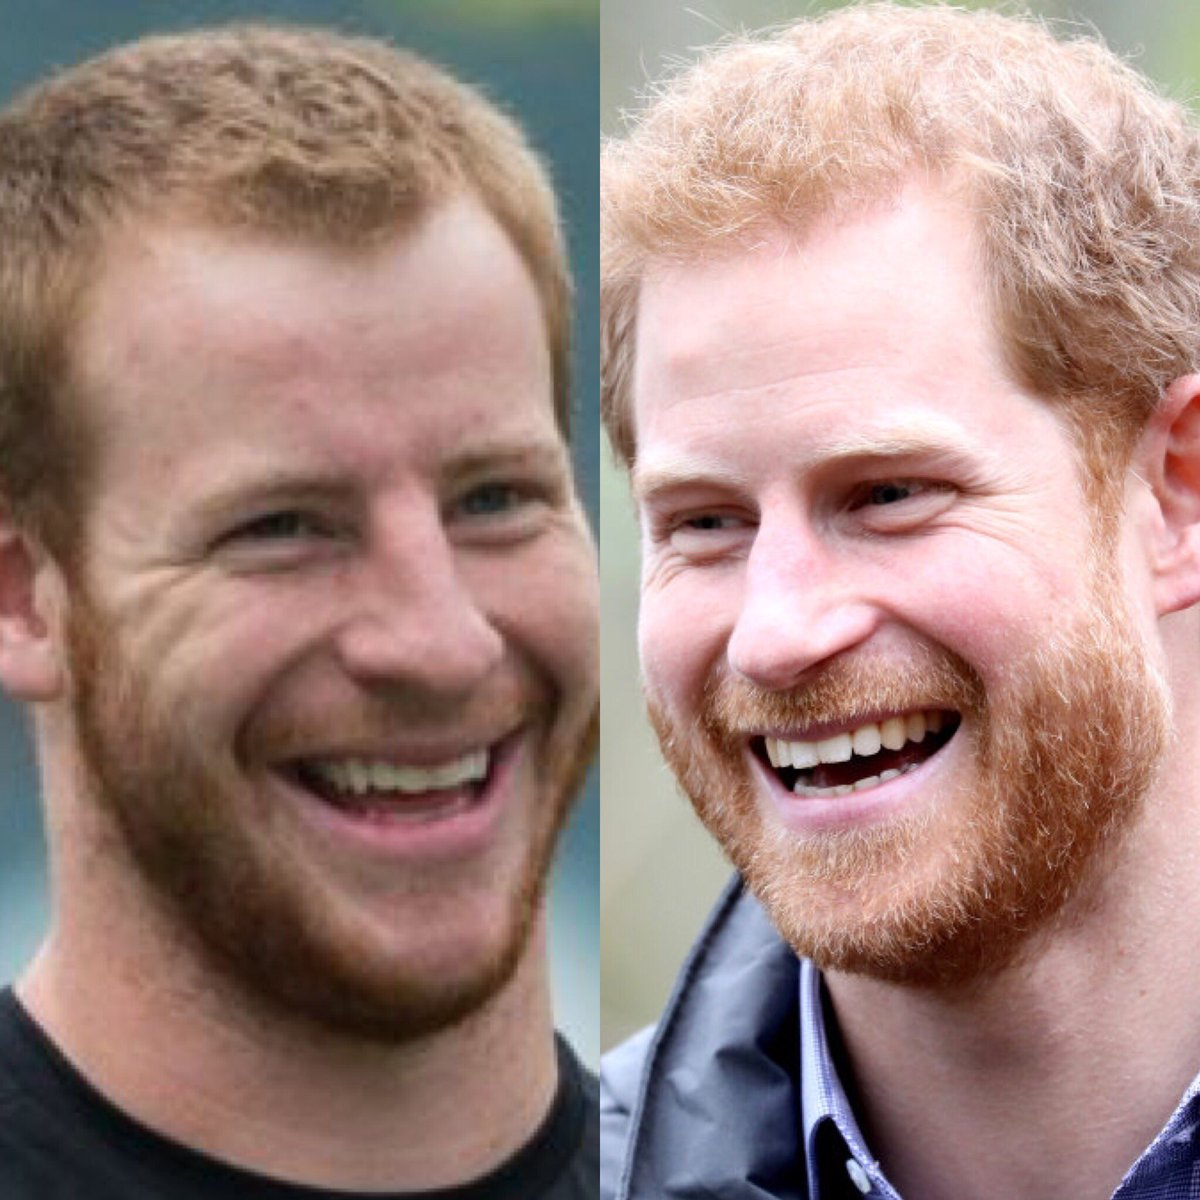 Pictures Of Carson Wentz And Prince Harry